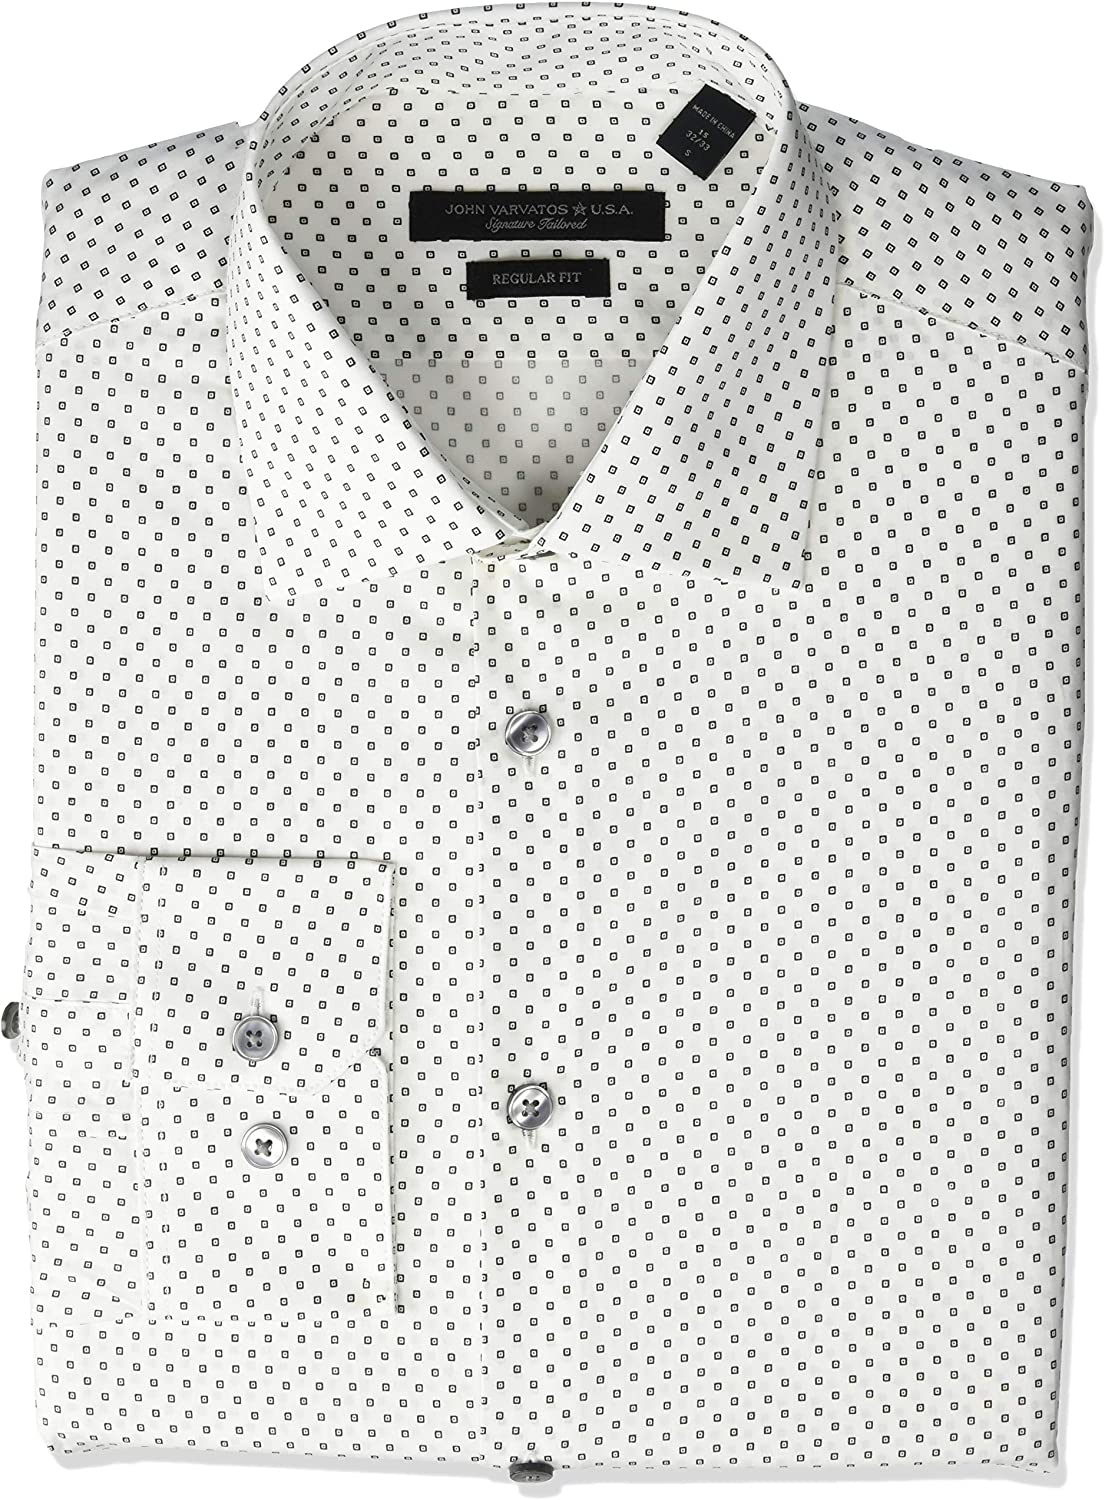 John Varvatos Star USA All items in the store Men's Columbus Mall Aaron Fit Regular Sleeve Butto Long